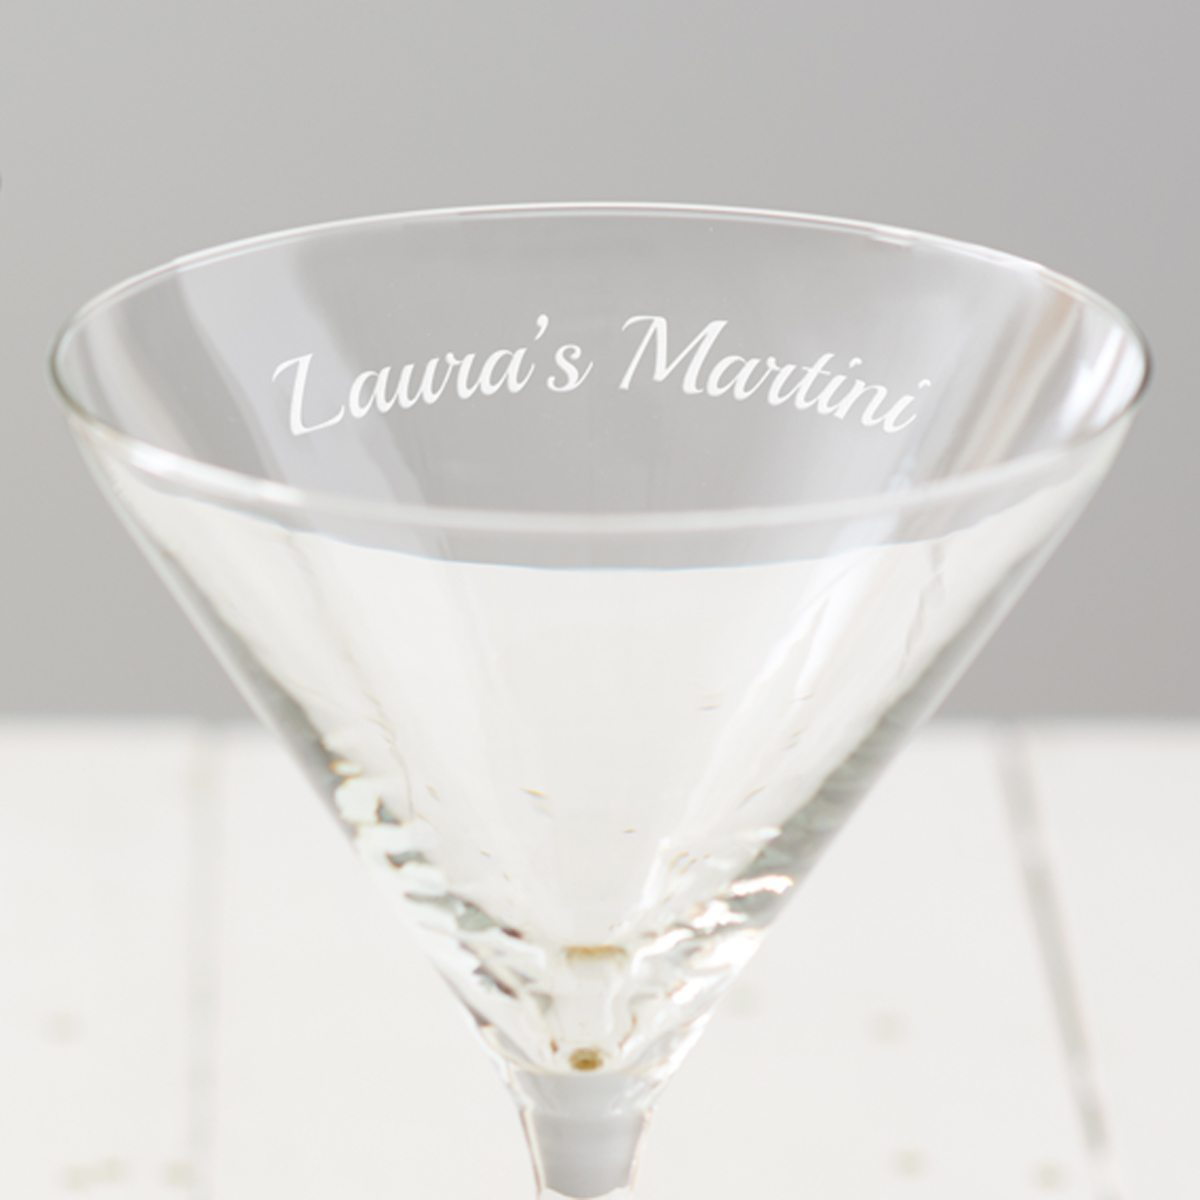 Personalised Martini Glass